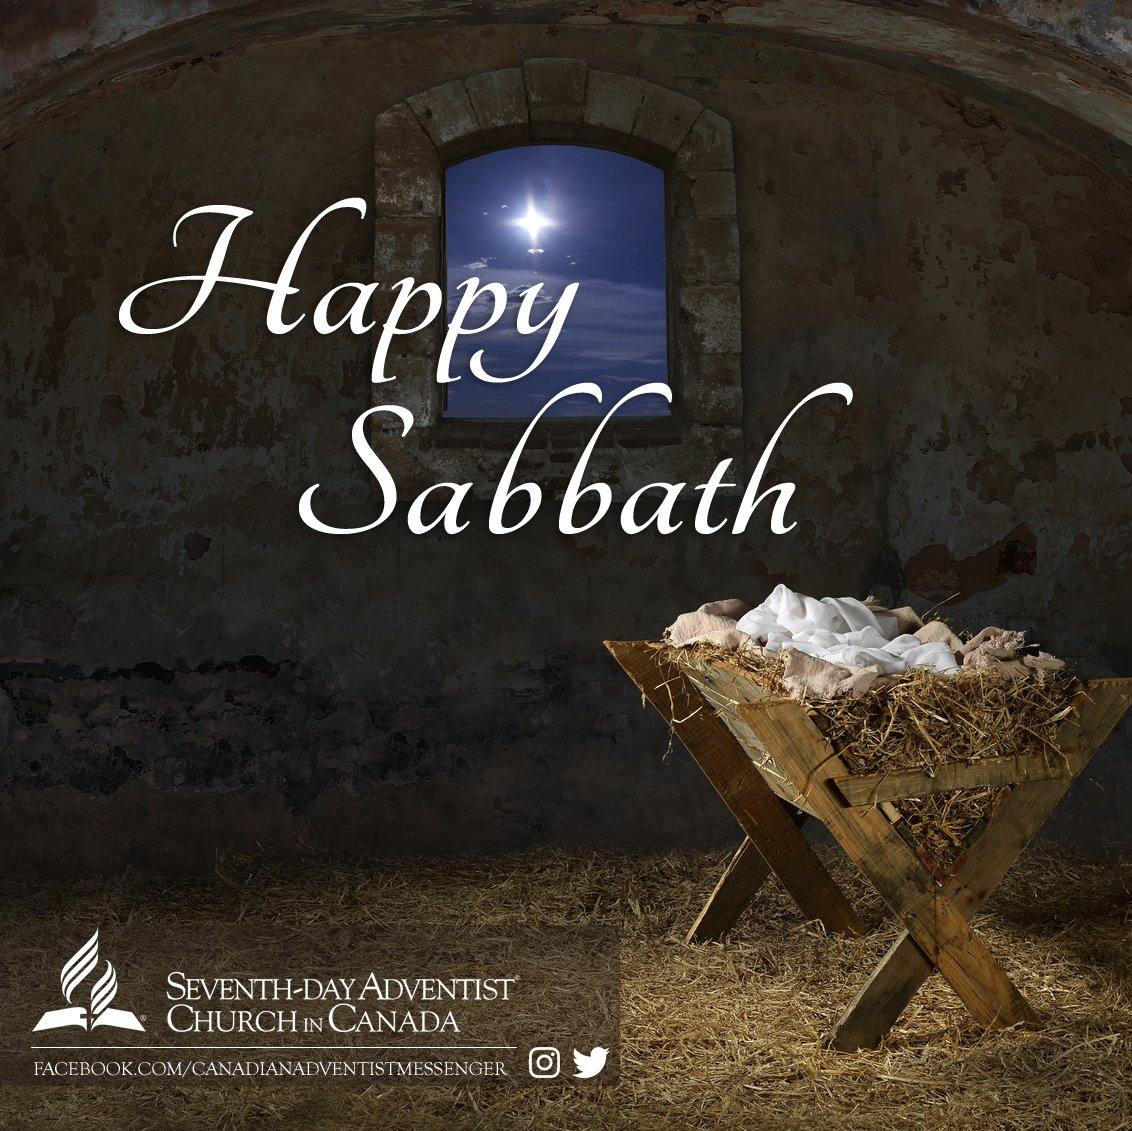 Do 7th Day Adventists Celebrate Christmas.Adventist Messenger On Twitter Happy Sabbath From Canadian